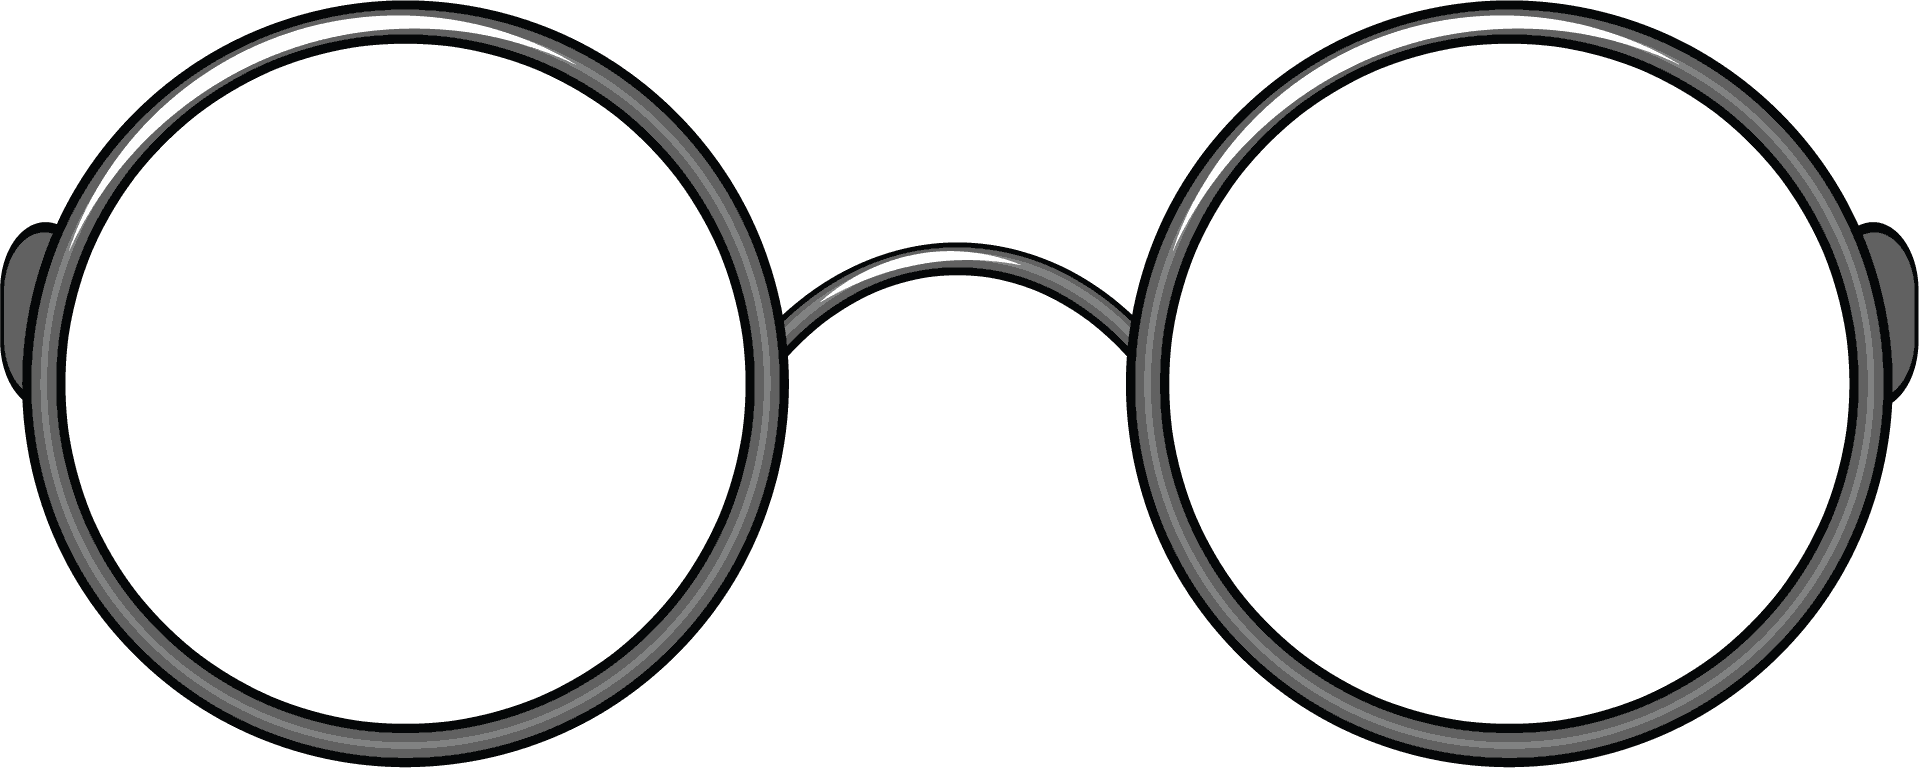 Free Eye Glasses Cliparts, Download Free Clip Art, Free Clip.